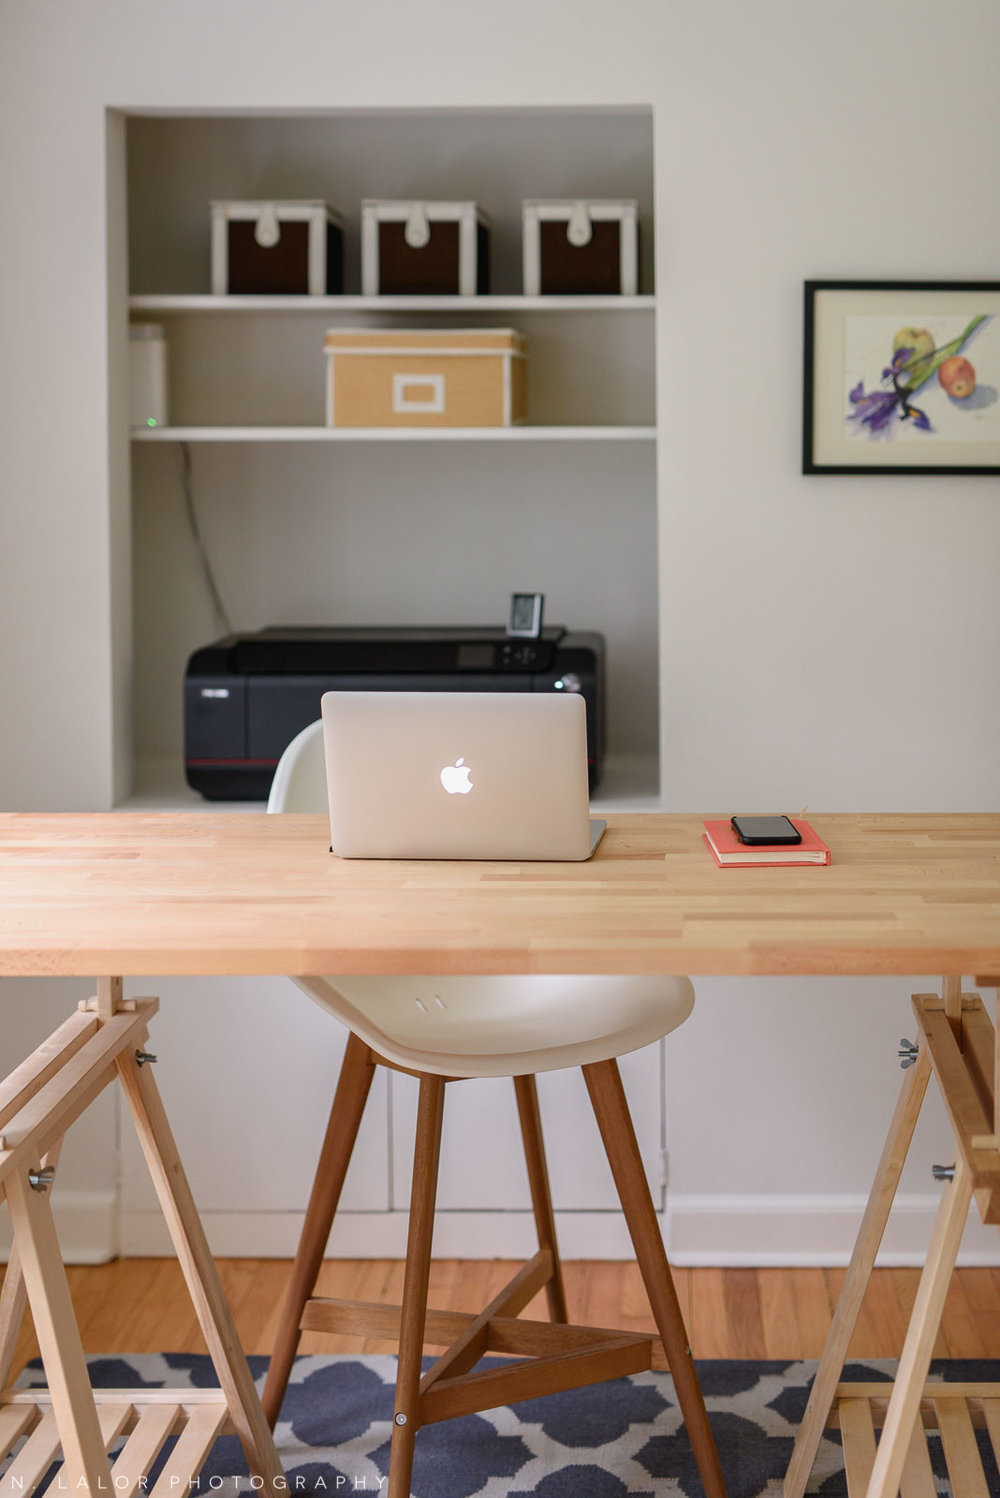 Image of a work desk with laptop.